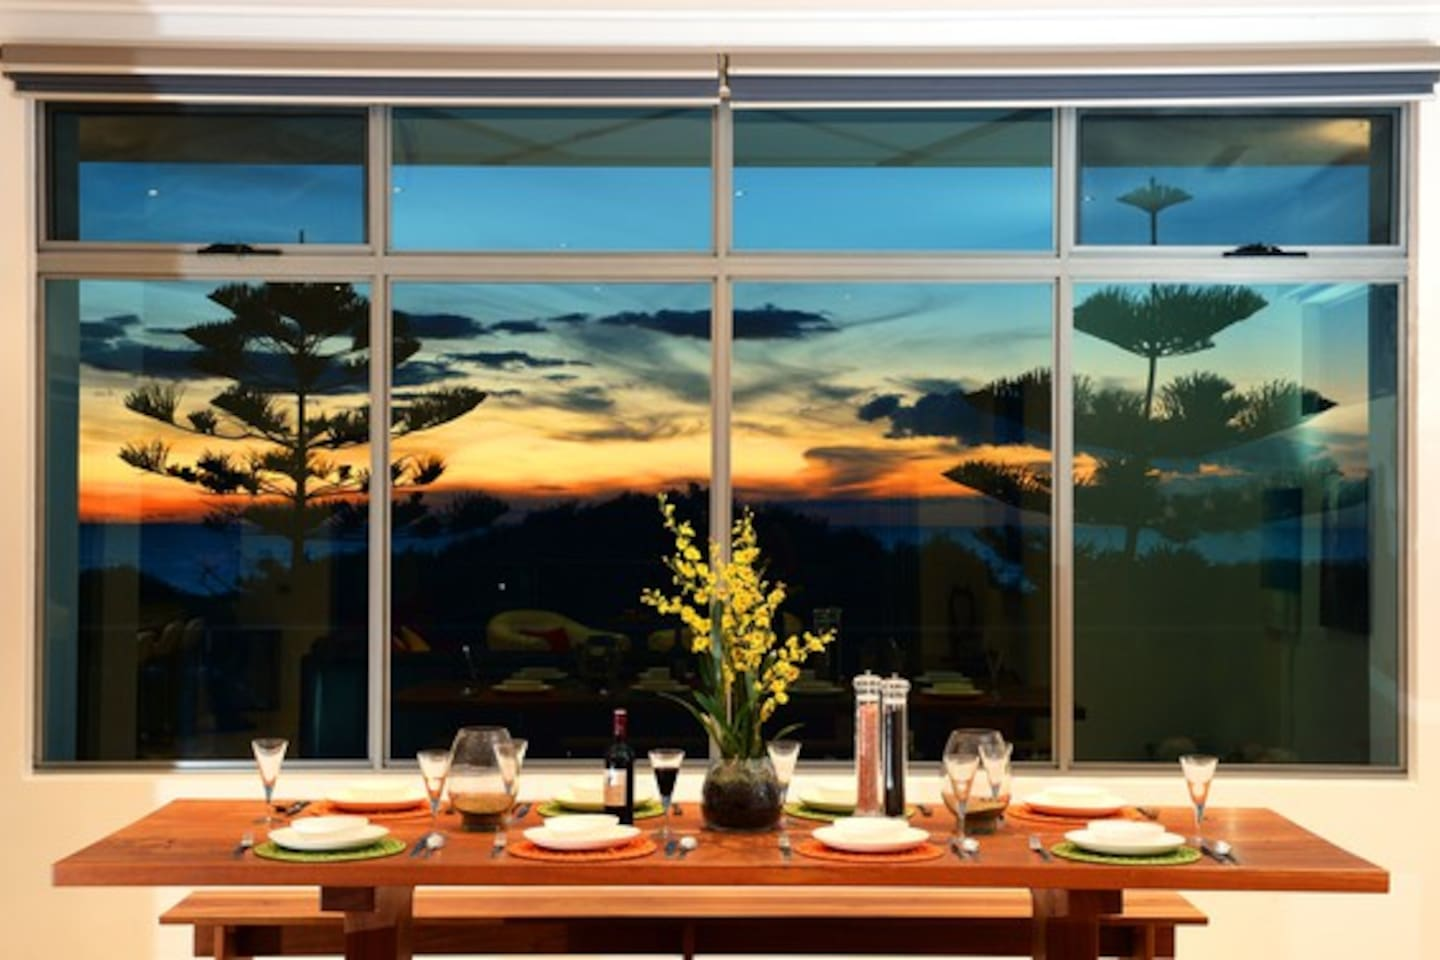 Sunset views from the dining table